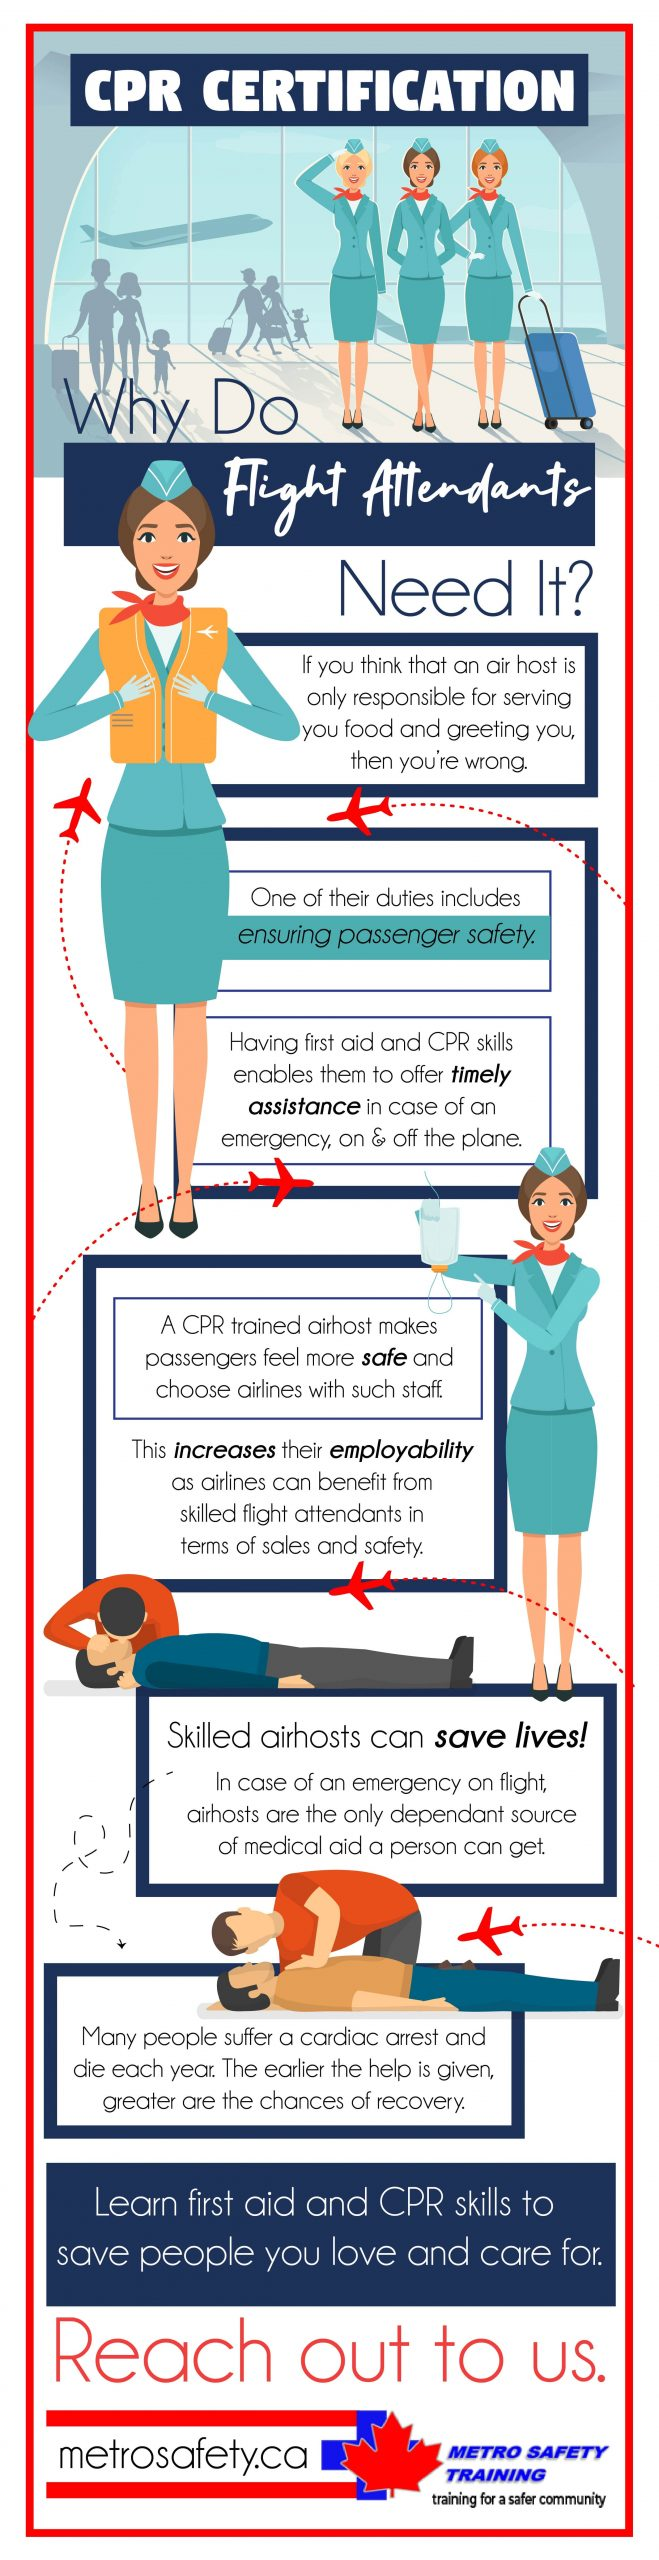 CPR-CERTIFICATION-FOR-FLIGHT-ATTENDENTS